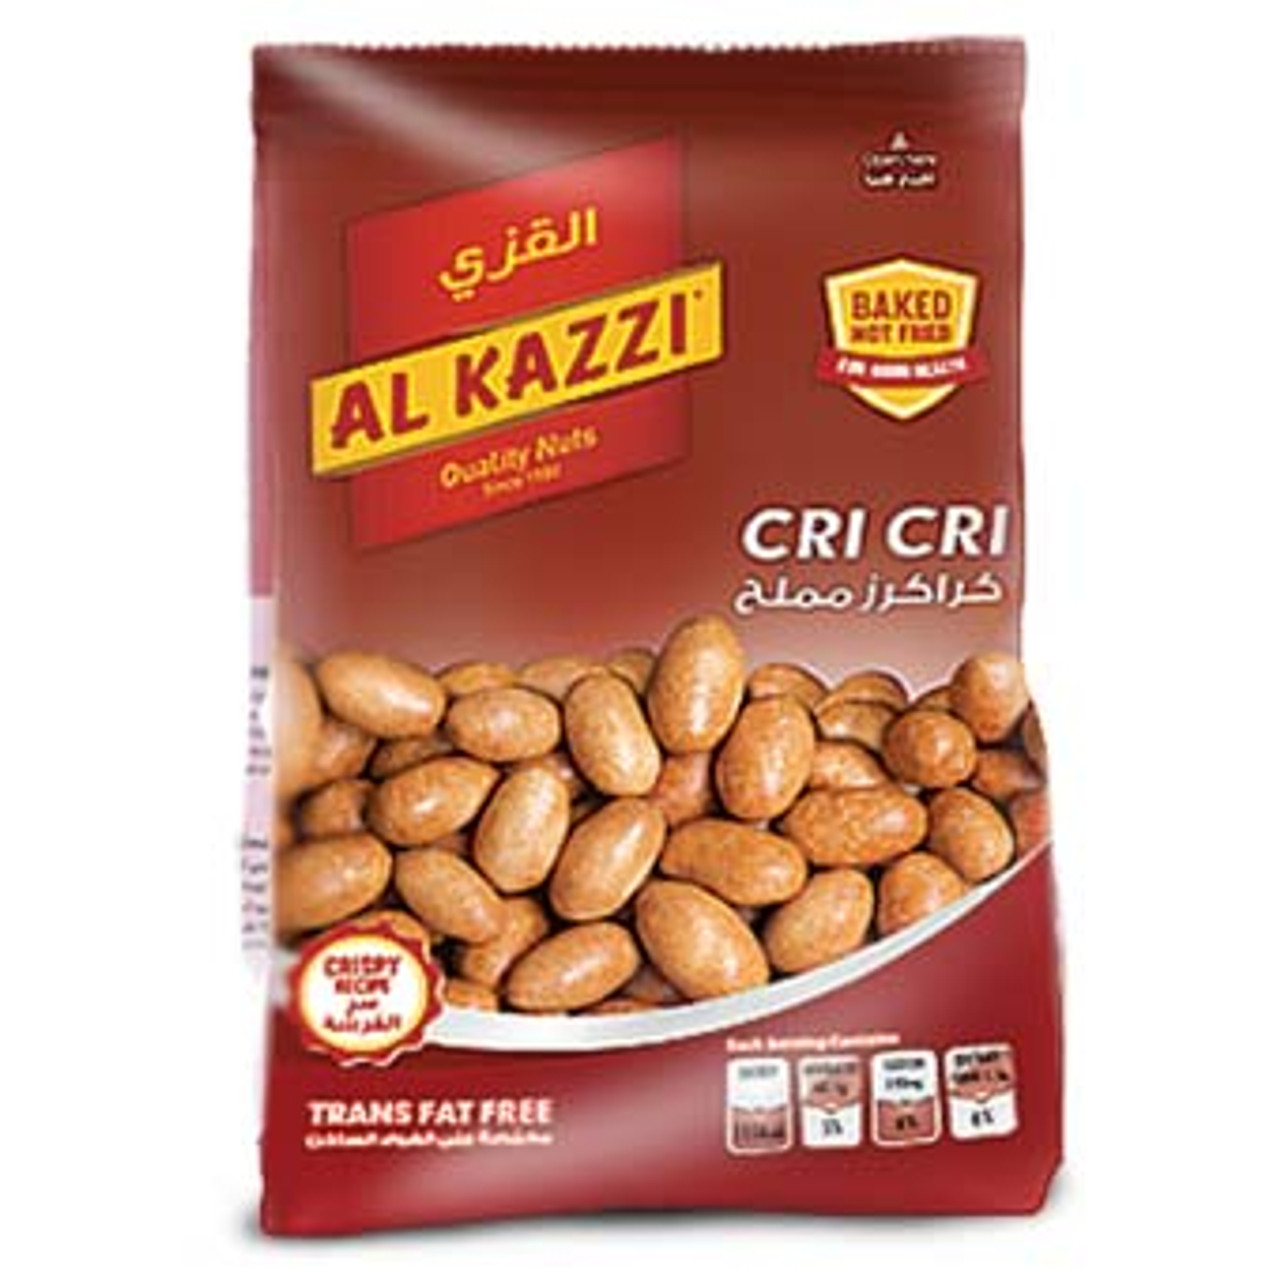 NGREDIENTS : Peanuts, wheat flour, corn starch, salt, maltodextrine. Contains: peanuts, wheat flour. Although every preventive measure has been taken, this product may contain traces of treenuts and milk products.